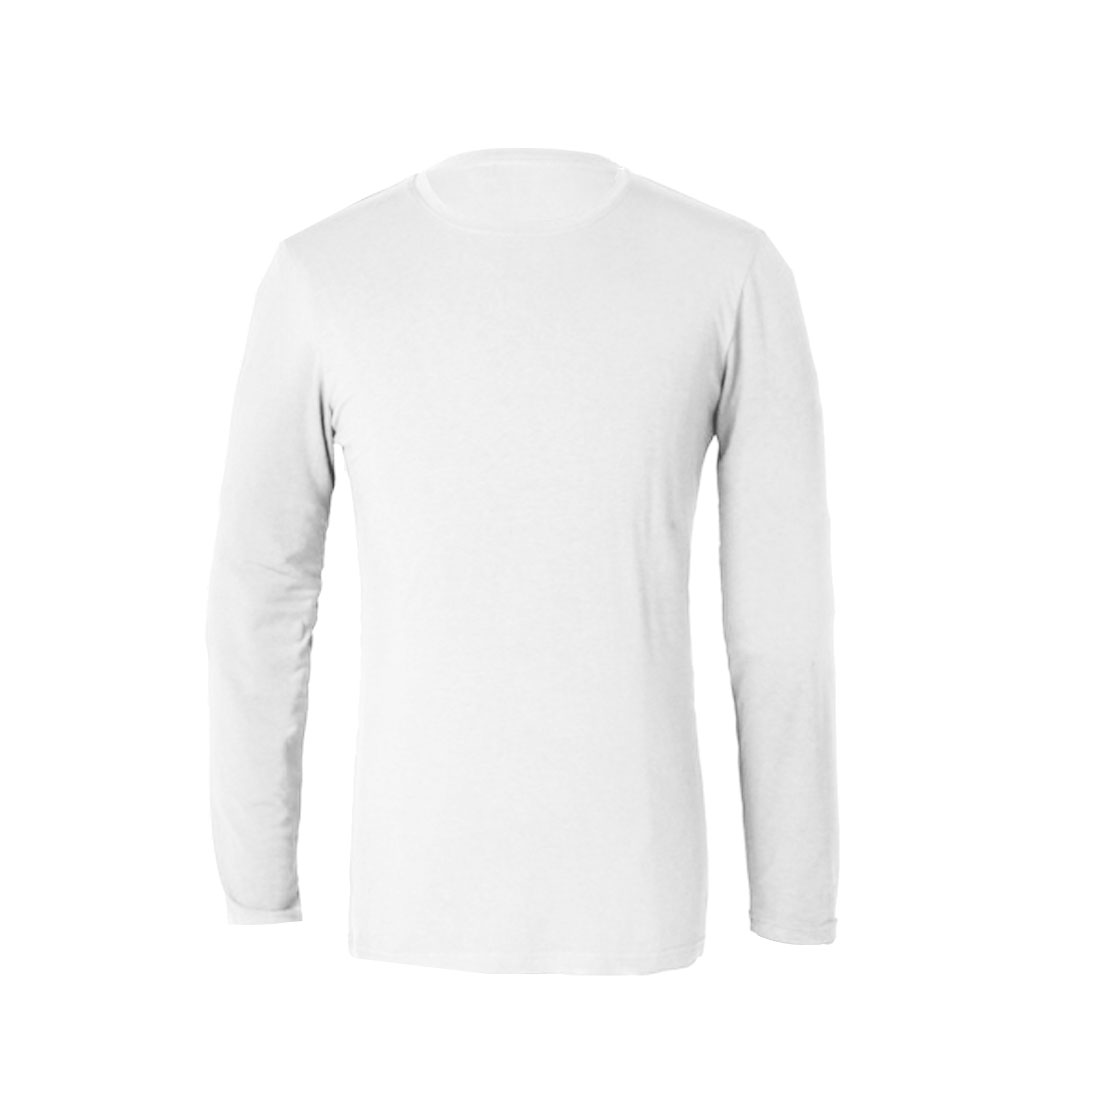 Pullover Stretchy Slim Fit Pure White Spring Autumn Shirt for Man S